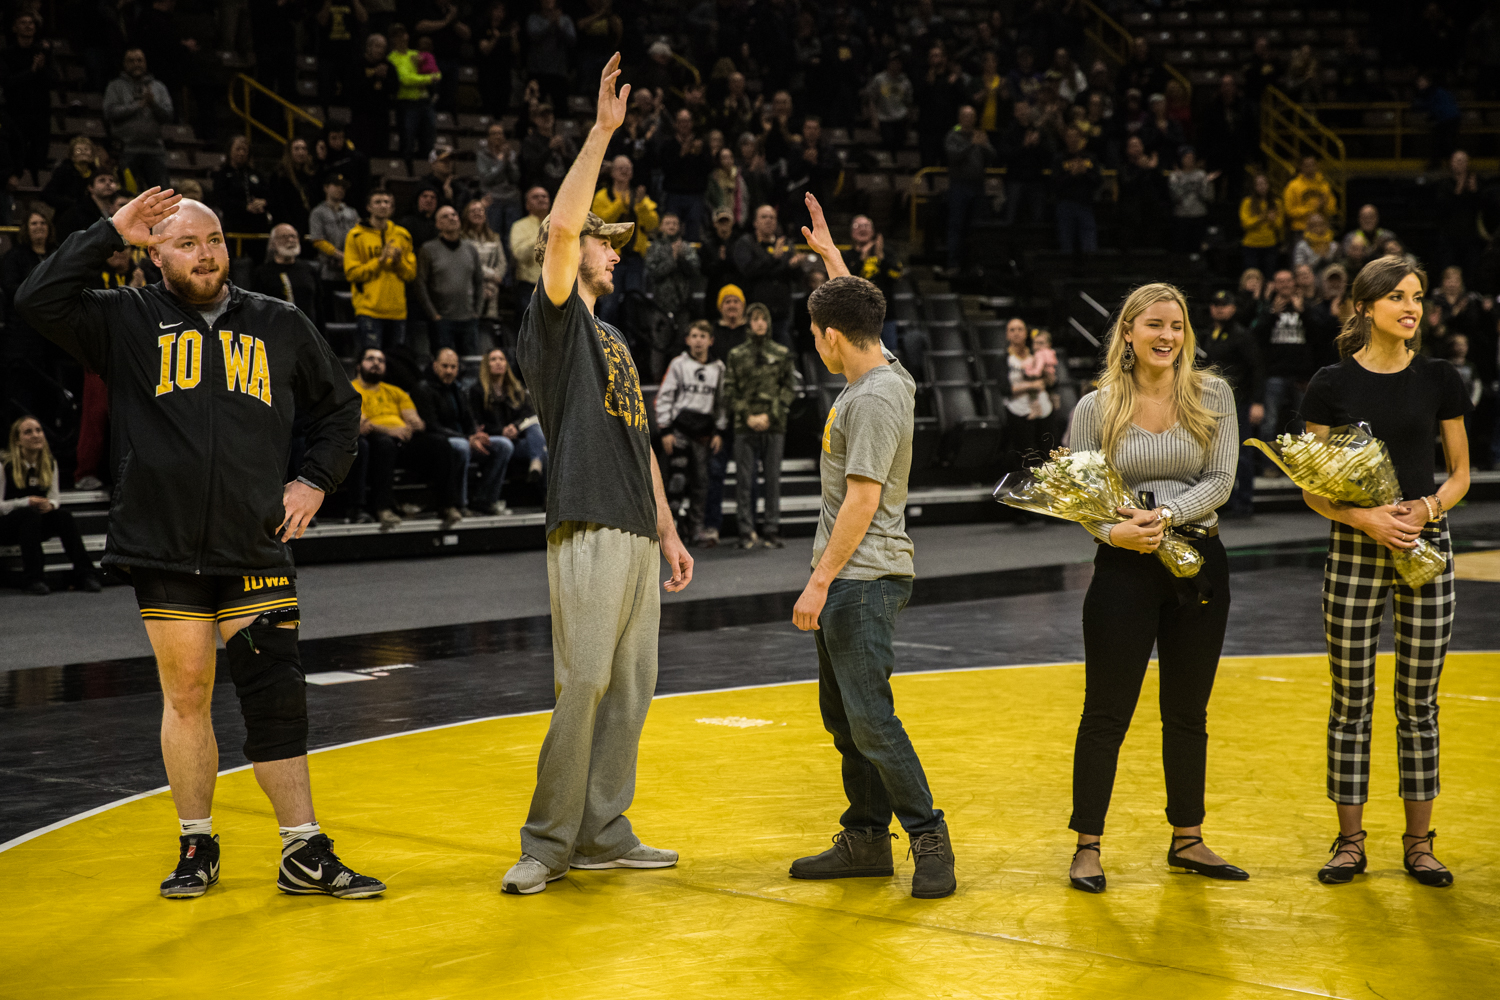 Iowa+wrestling+seniors+are+honored+during+a+wrestling+match+between+Iowa+and+Indiana+at+Carver-Hawkeye+Arena+on+Friday%2C+February+15%2C+2019.+The+Hawkeyes%2C+celebrating+senior+night%2C+defeated+the+Hoosiers+37-9.